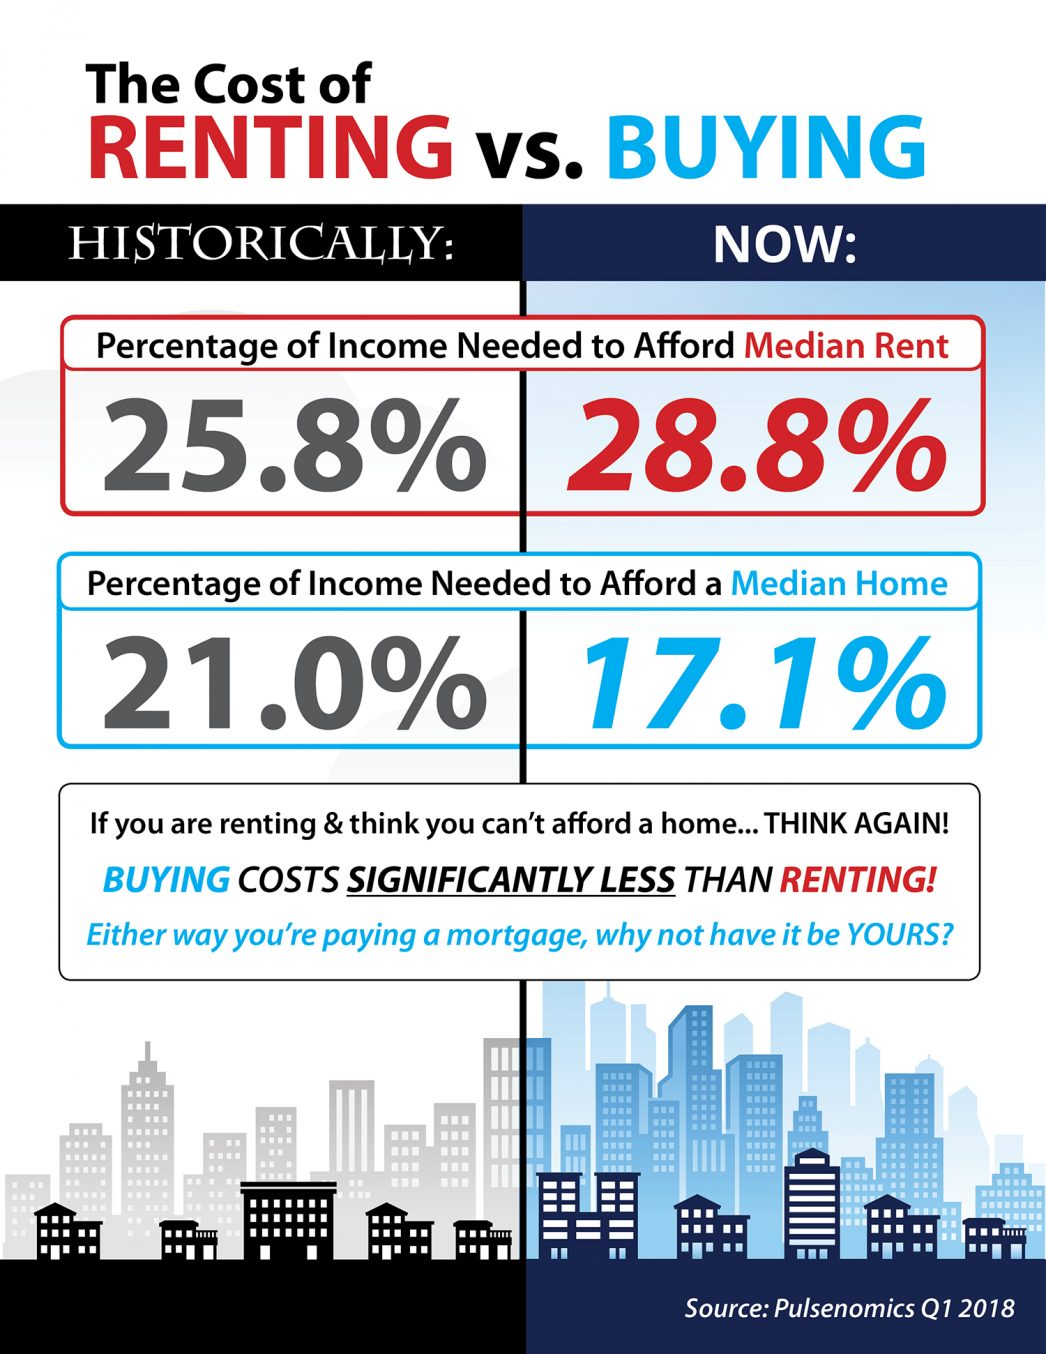 Rent-vs.-Buy-STM-1046x1354.jpg